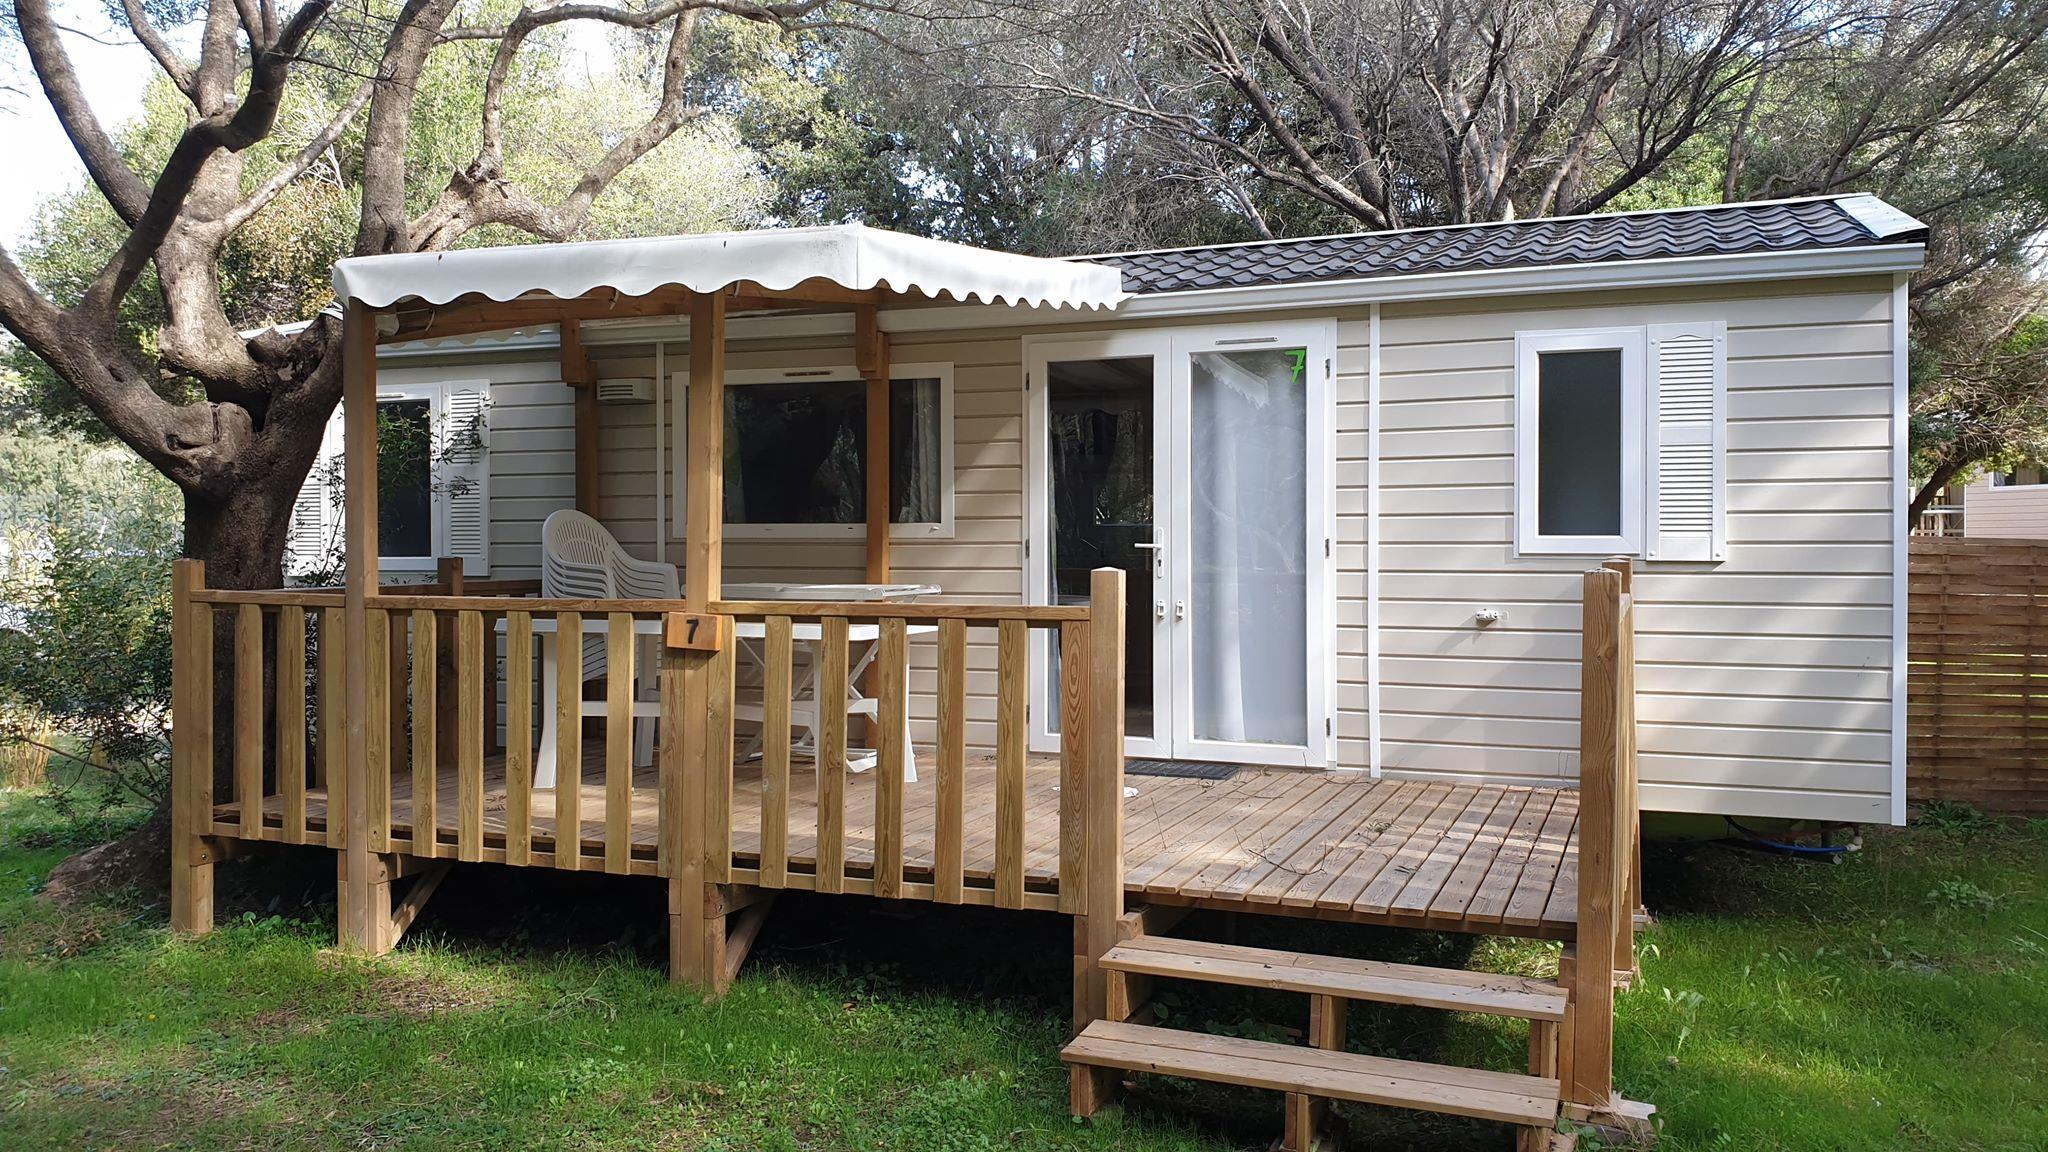 Camping-monte-ortu-new-mobile-home-seaview-